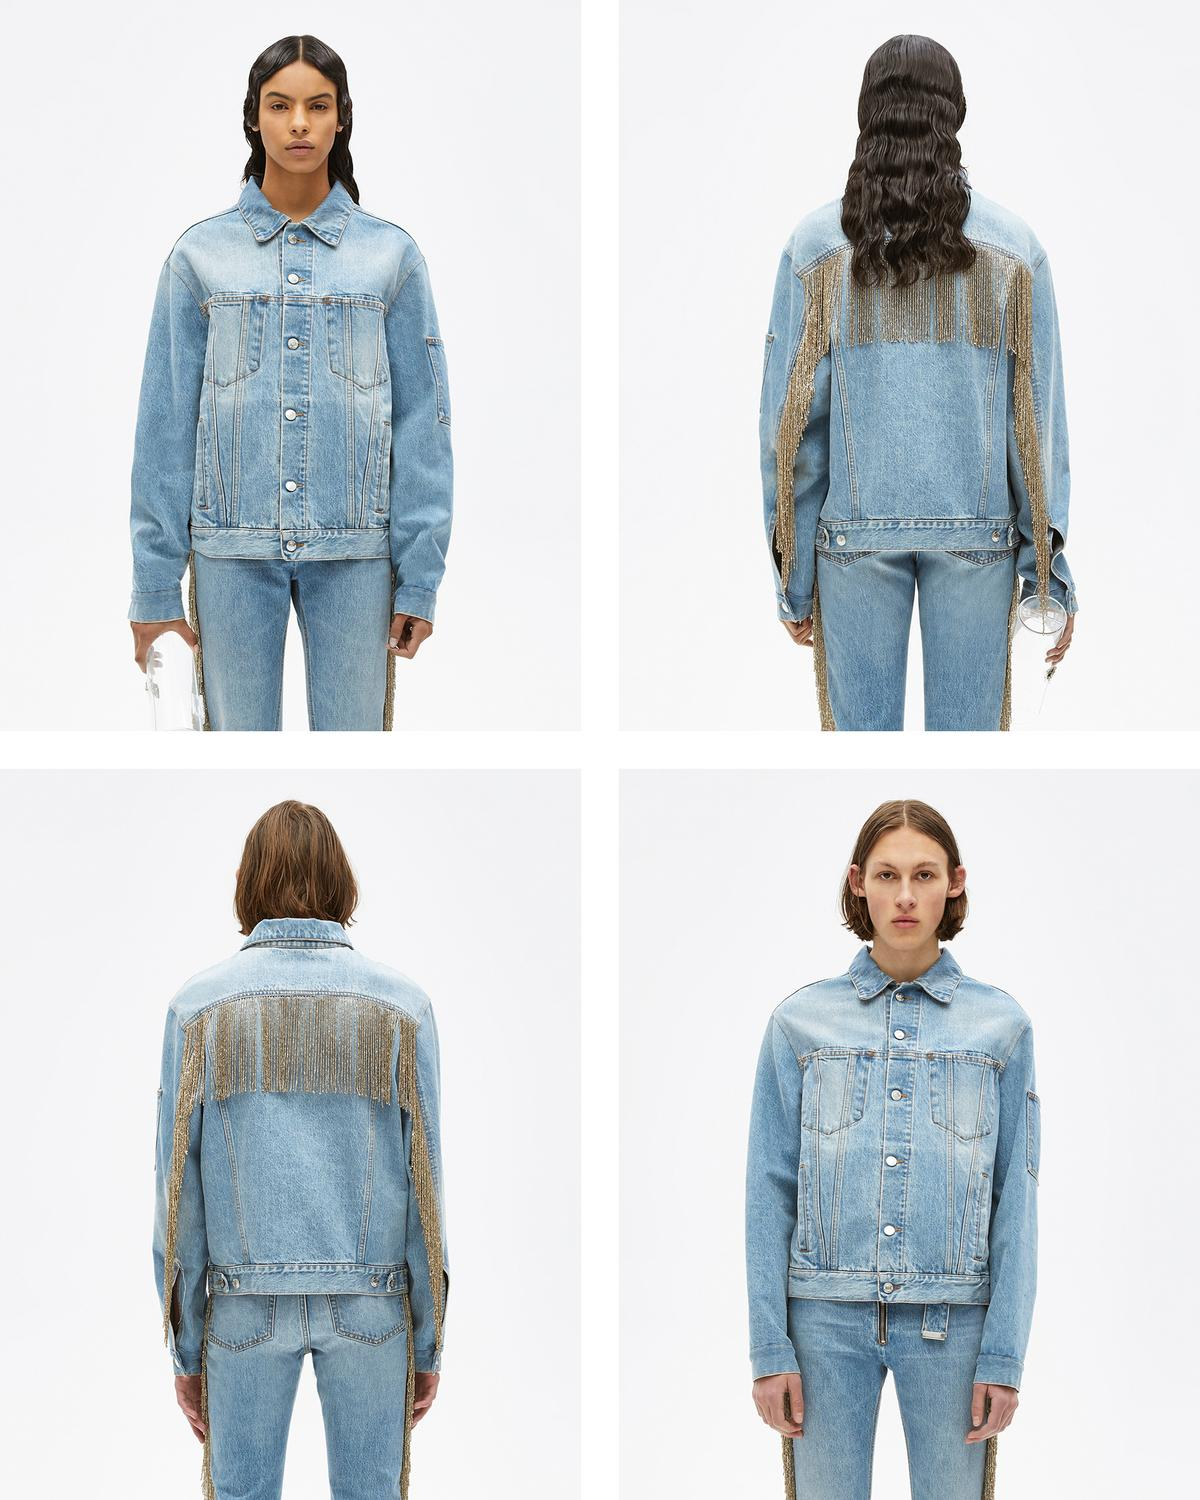 FRINGED JEAN JACKET